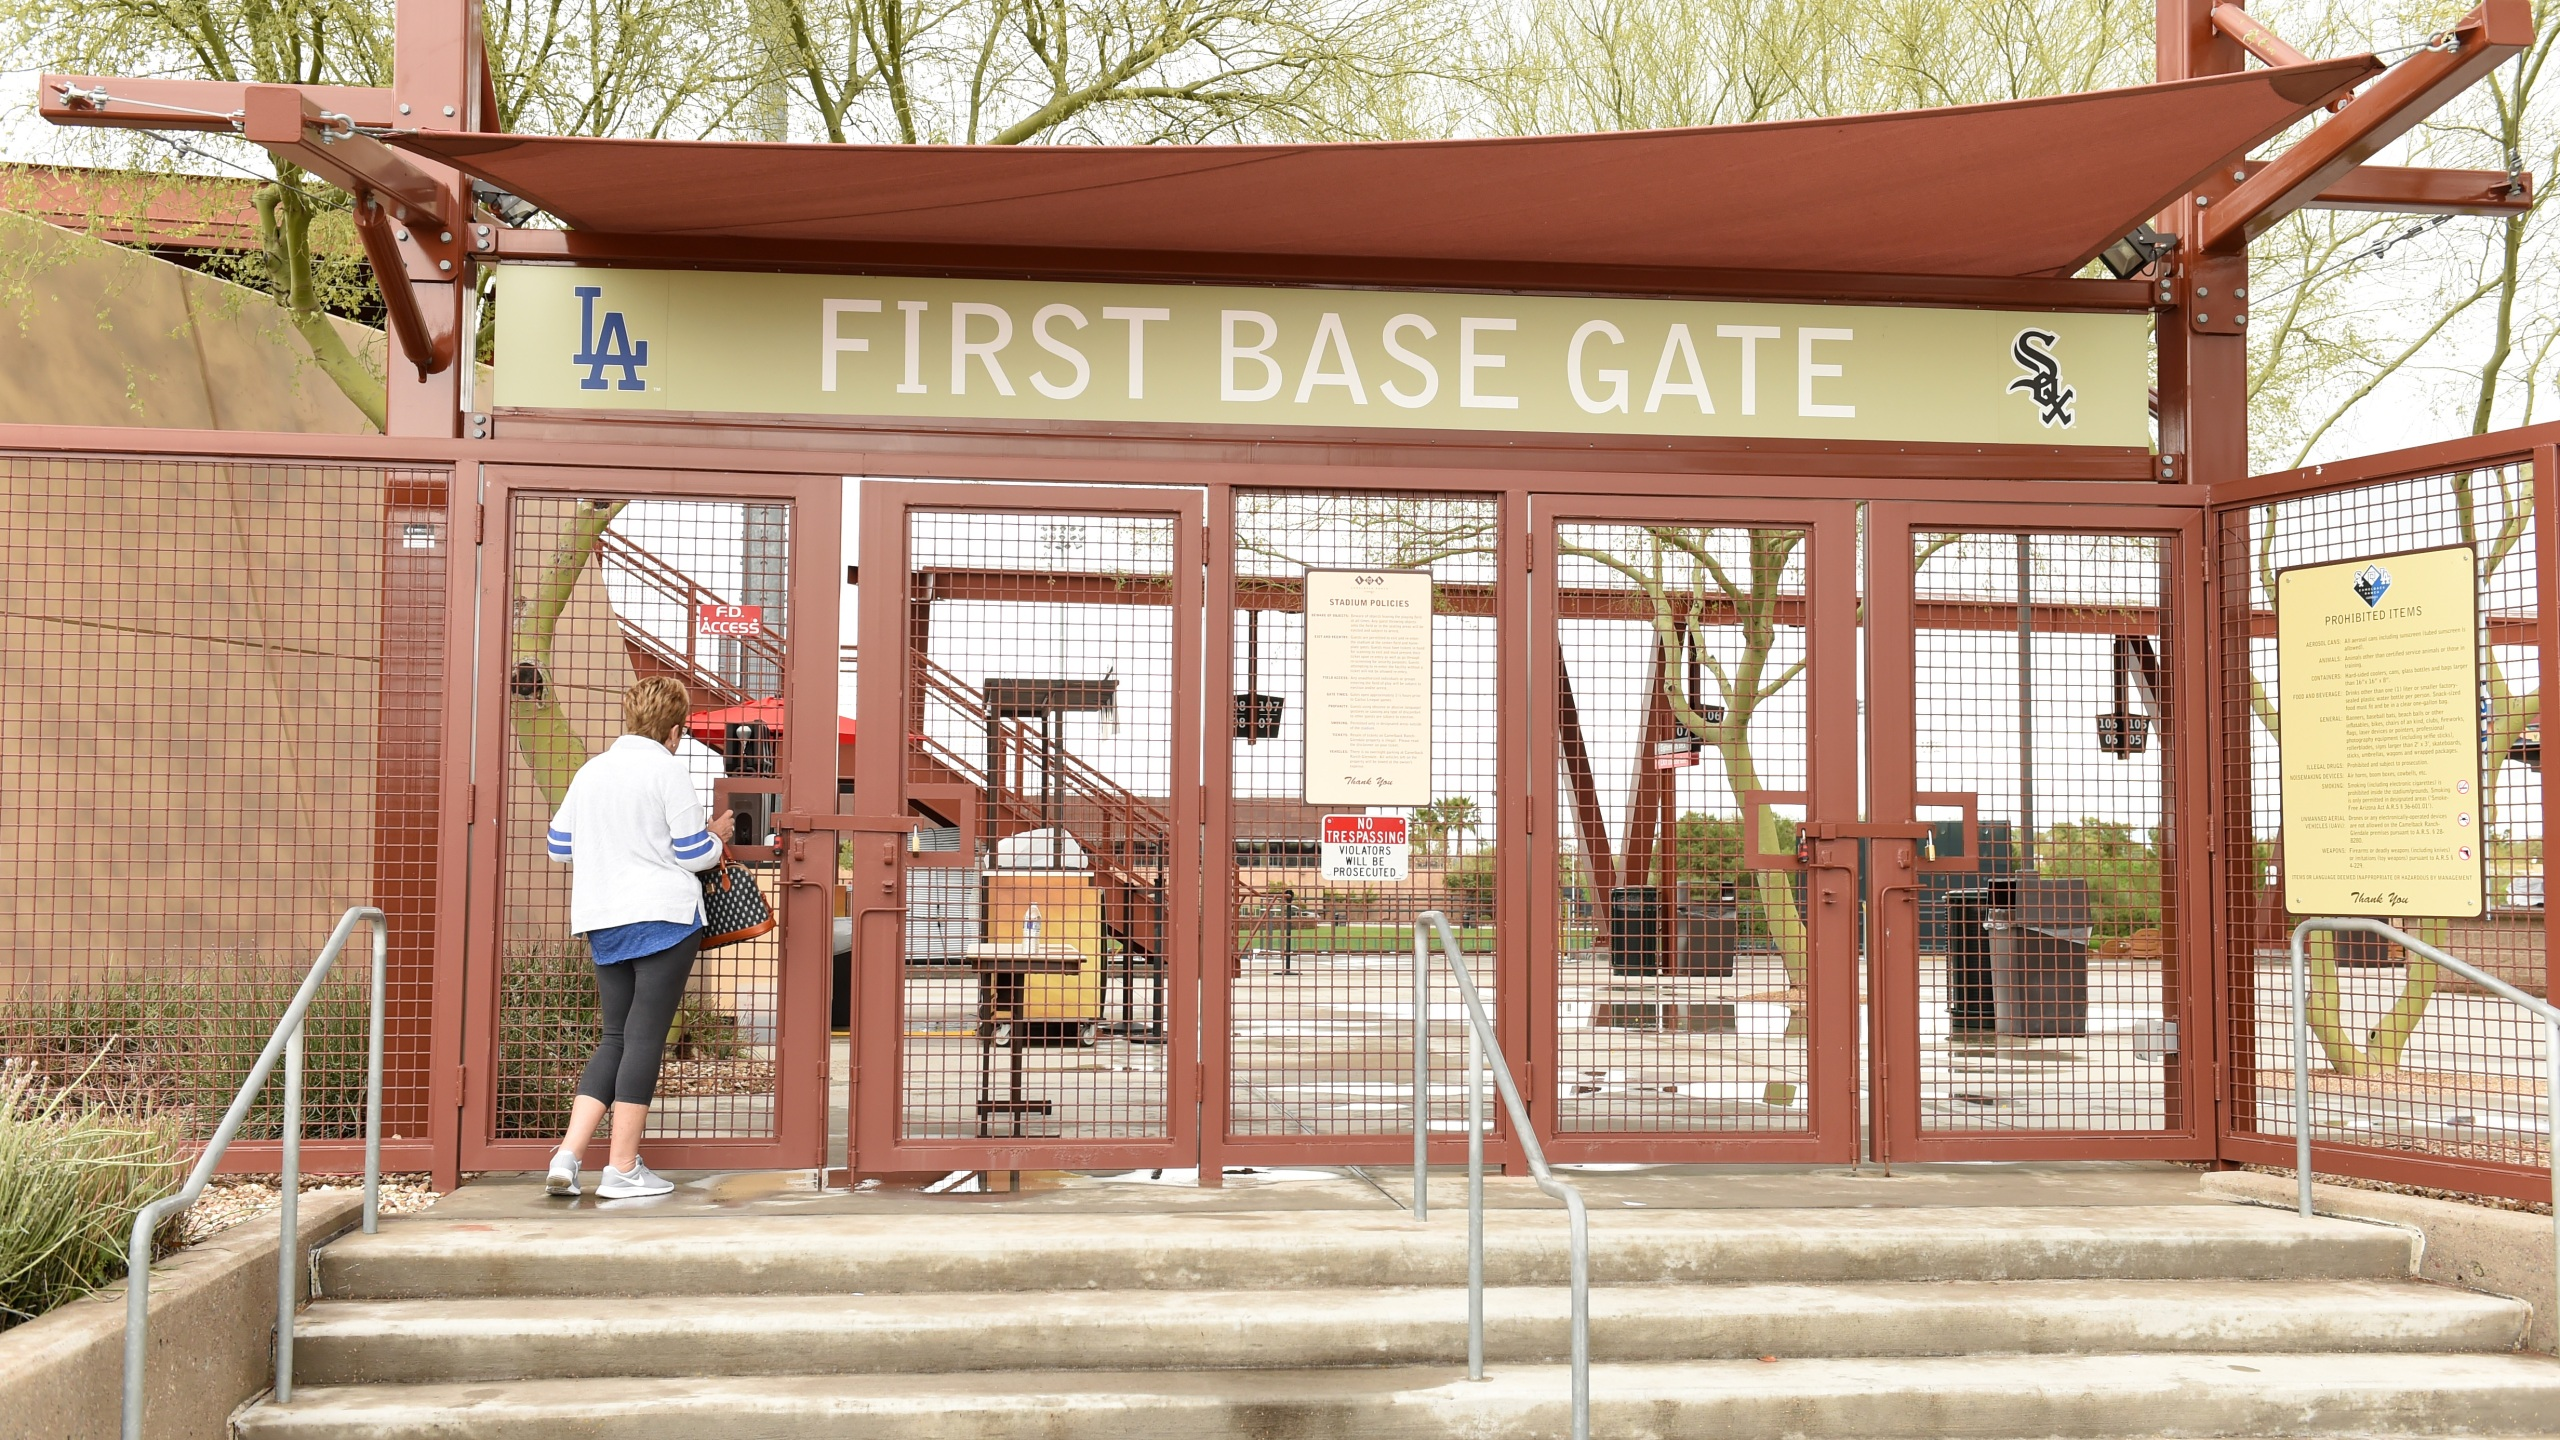 A Los Angeles Dodgers fan looks through the first base gate at Camelback Ranch after Major League Baseball suspended Spring Training on March 12, 2020 in Glendale, Arizona. MLB suspended spring training due to the ongoing threat of the coronavirus. (Norm Hall/Getty Images)